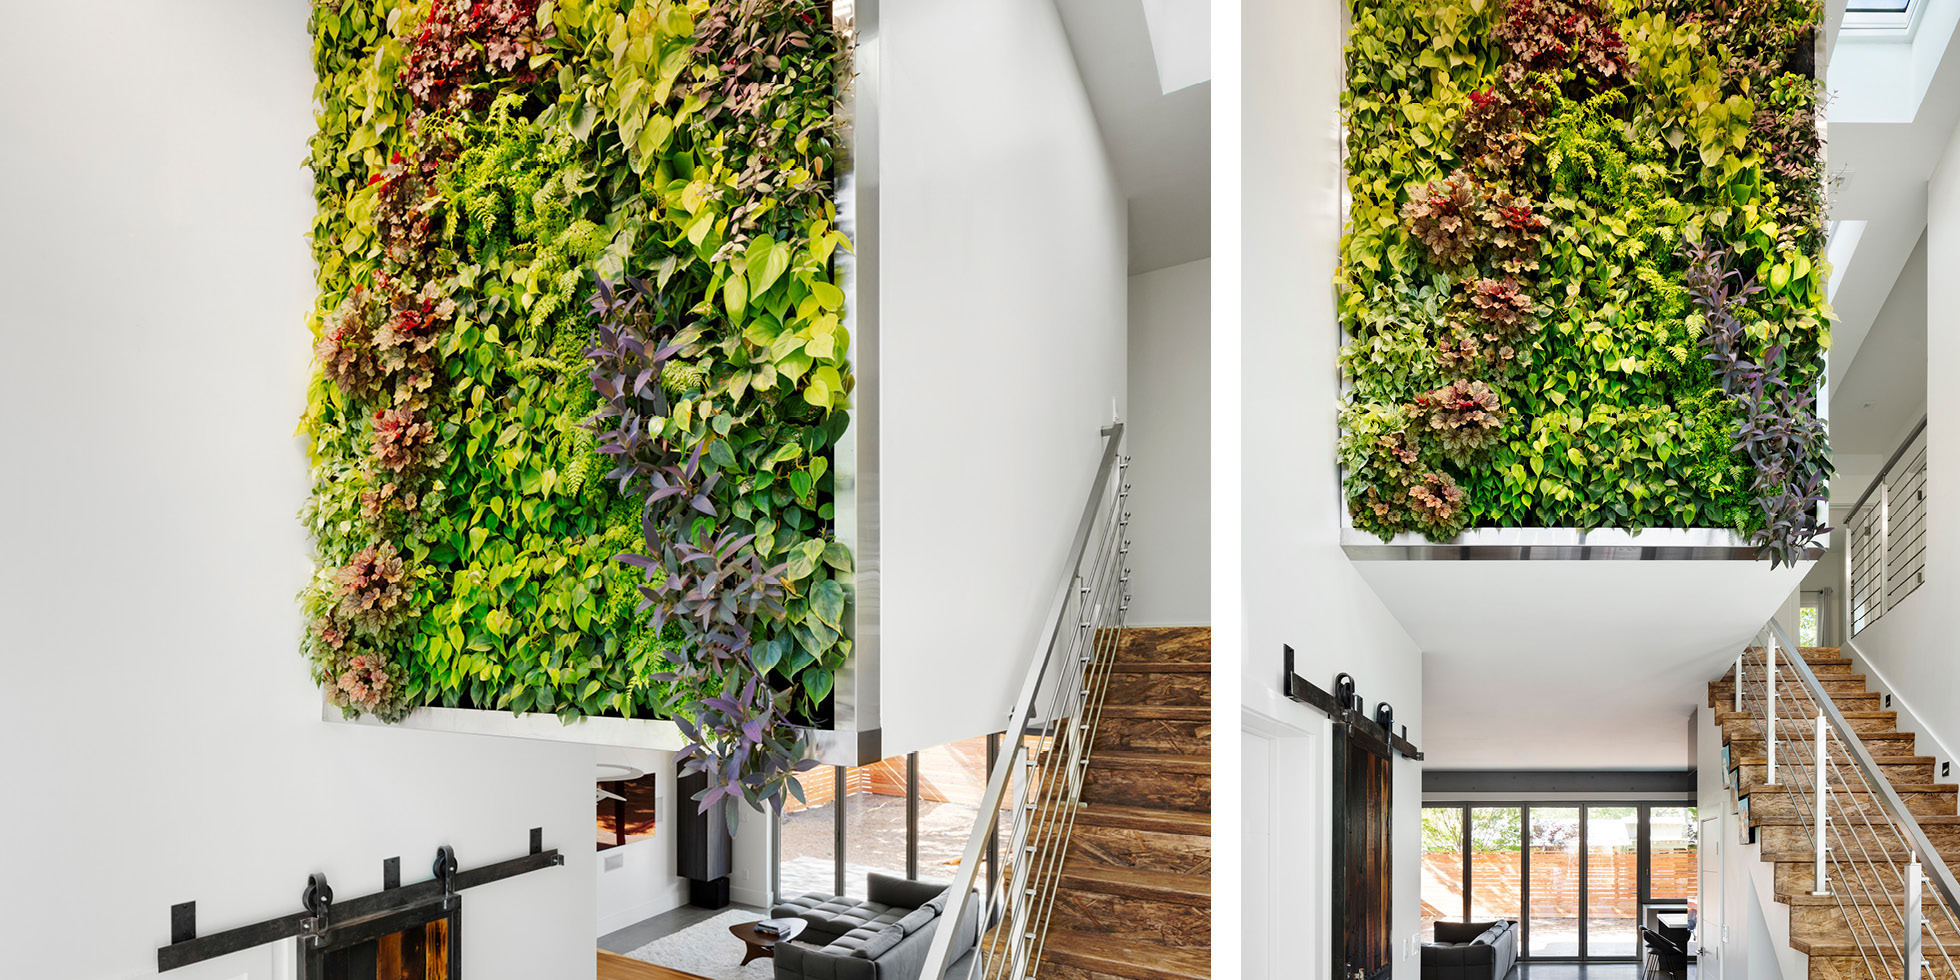 Mountain View Residence Living Wall by Habitat Horticulture - View 1